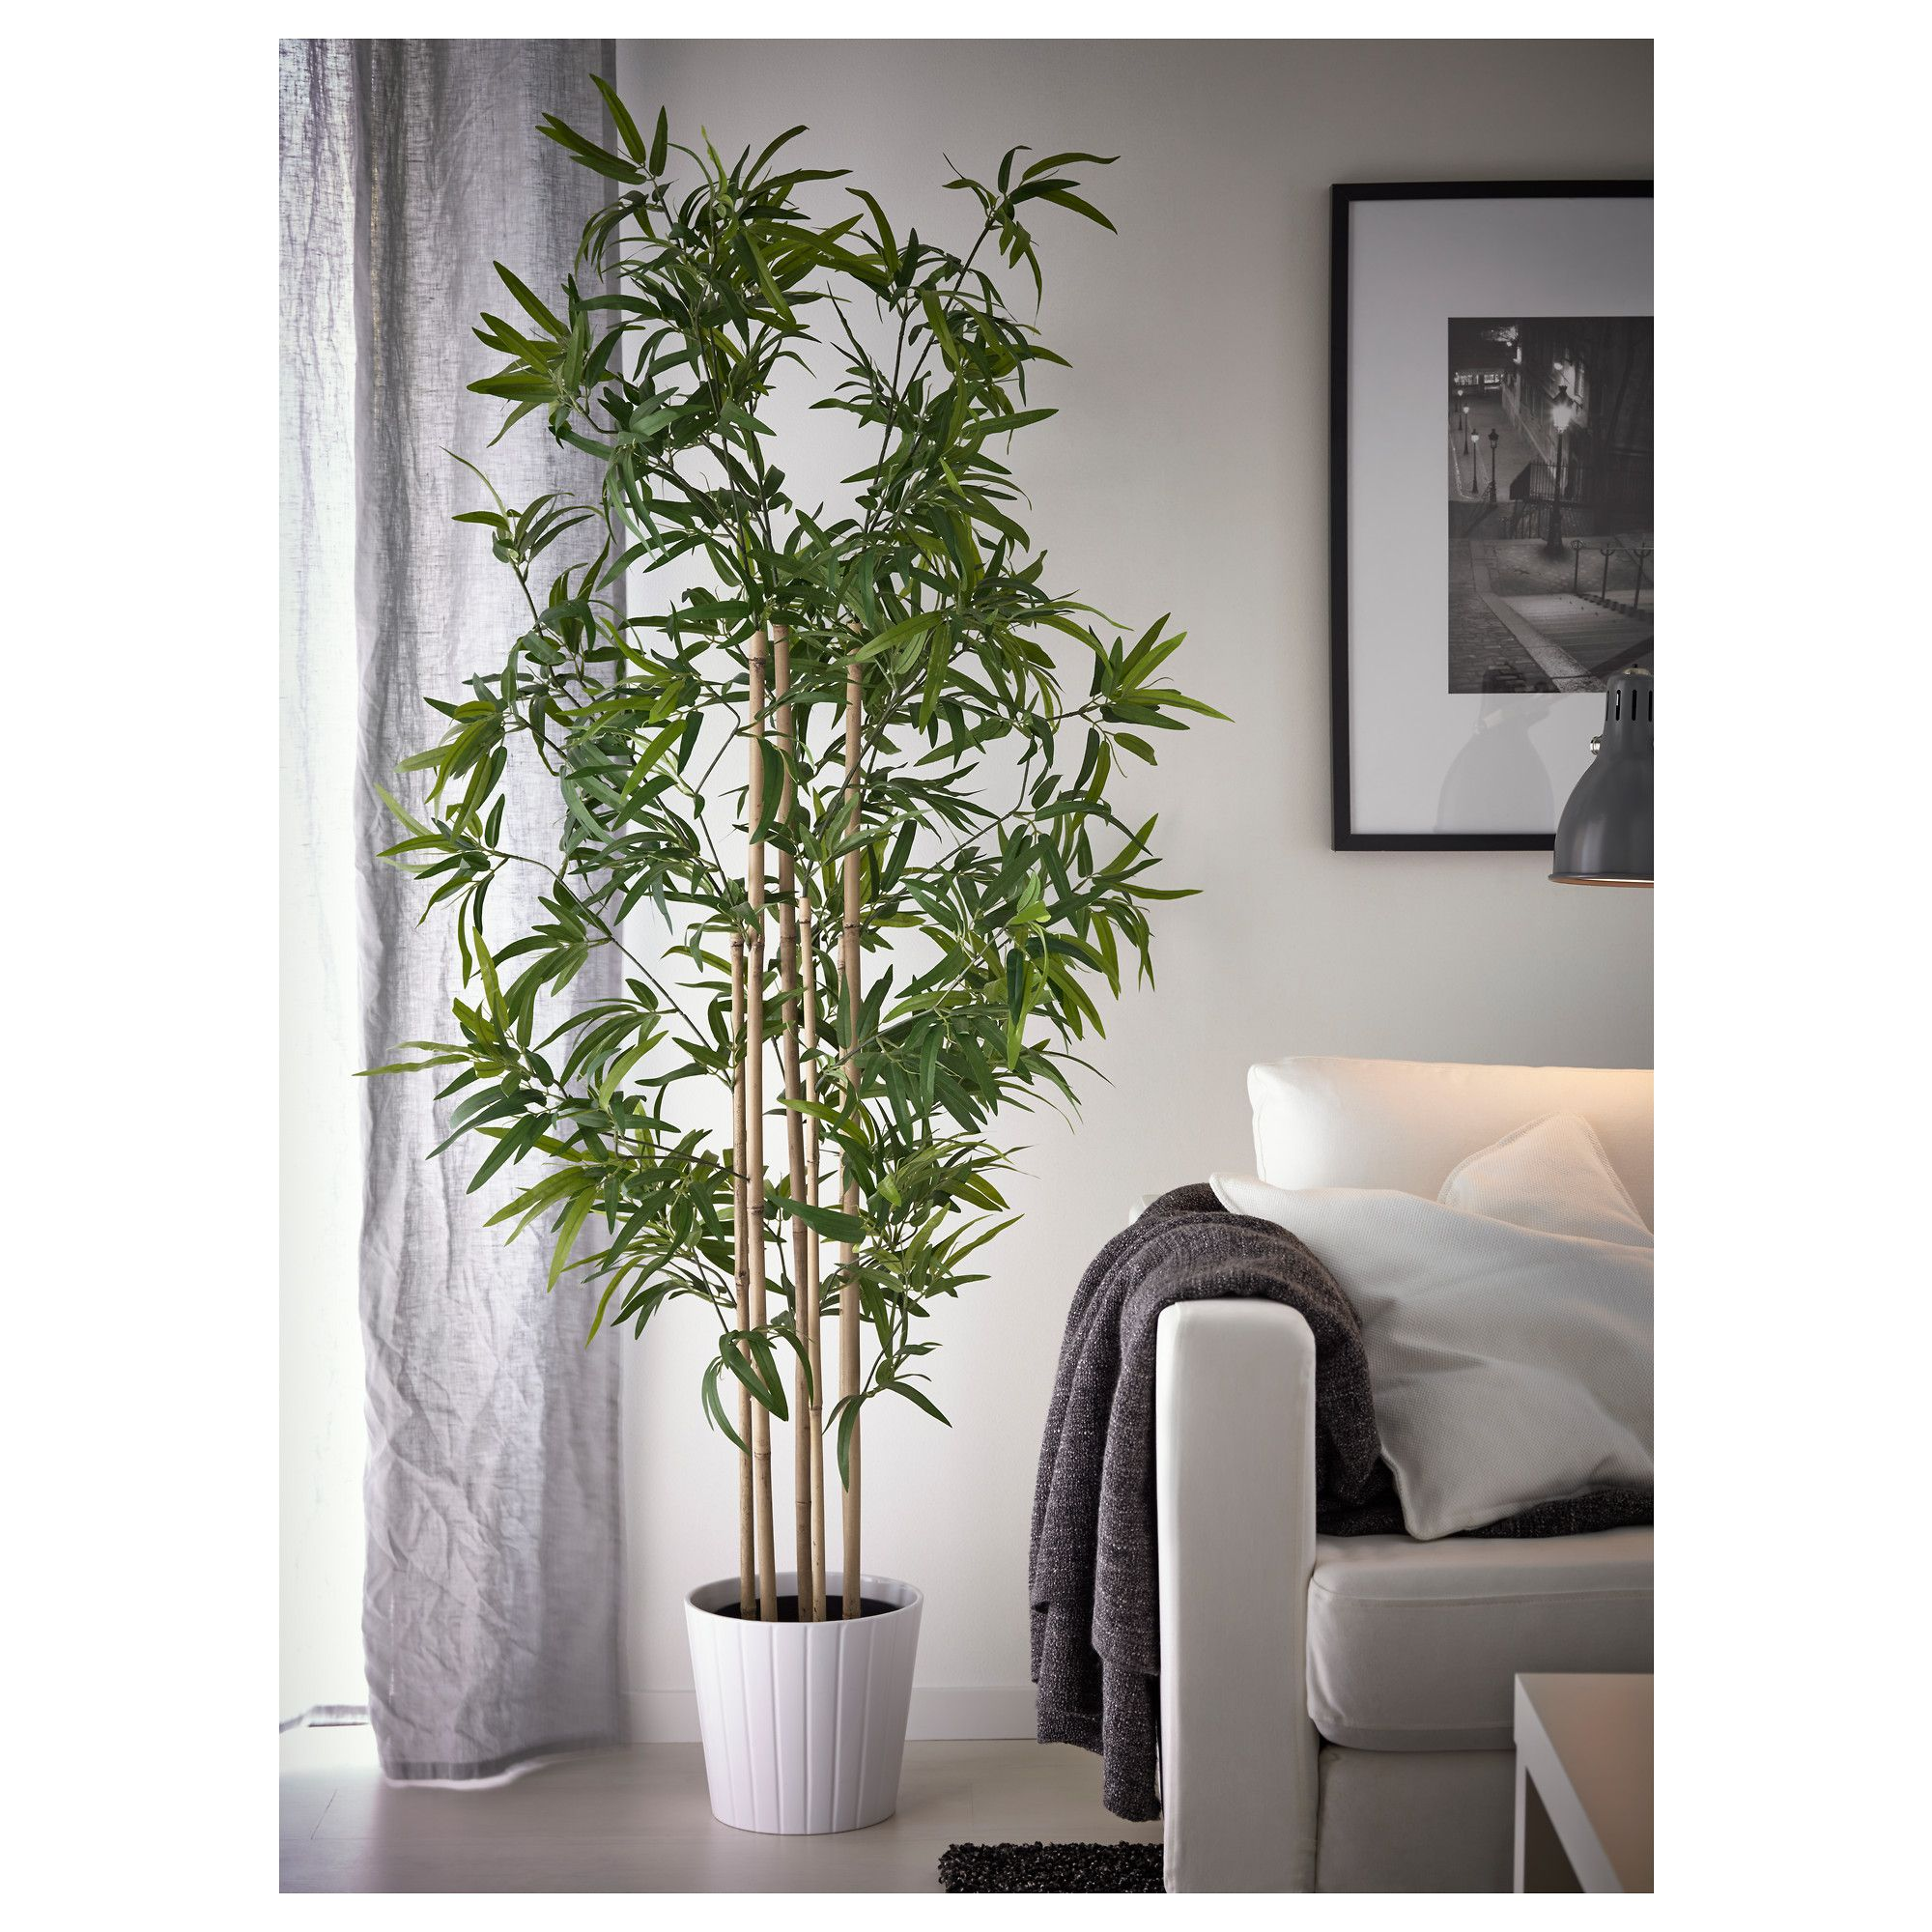 Ikea Artificial Trees: FEJKA Artificial Potted Plant Bamboo 21 Cm